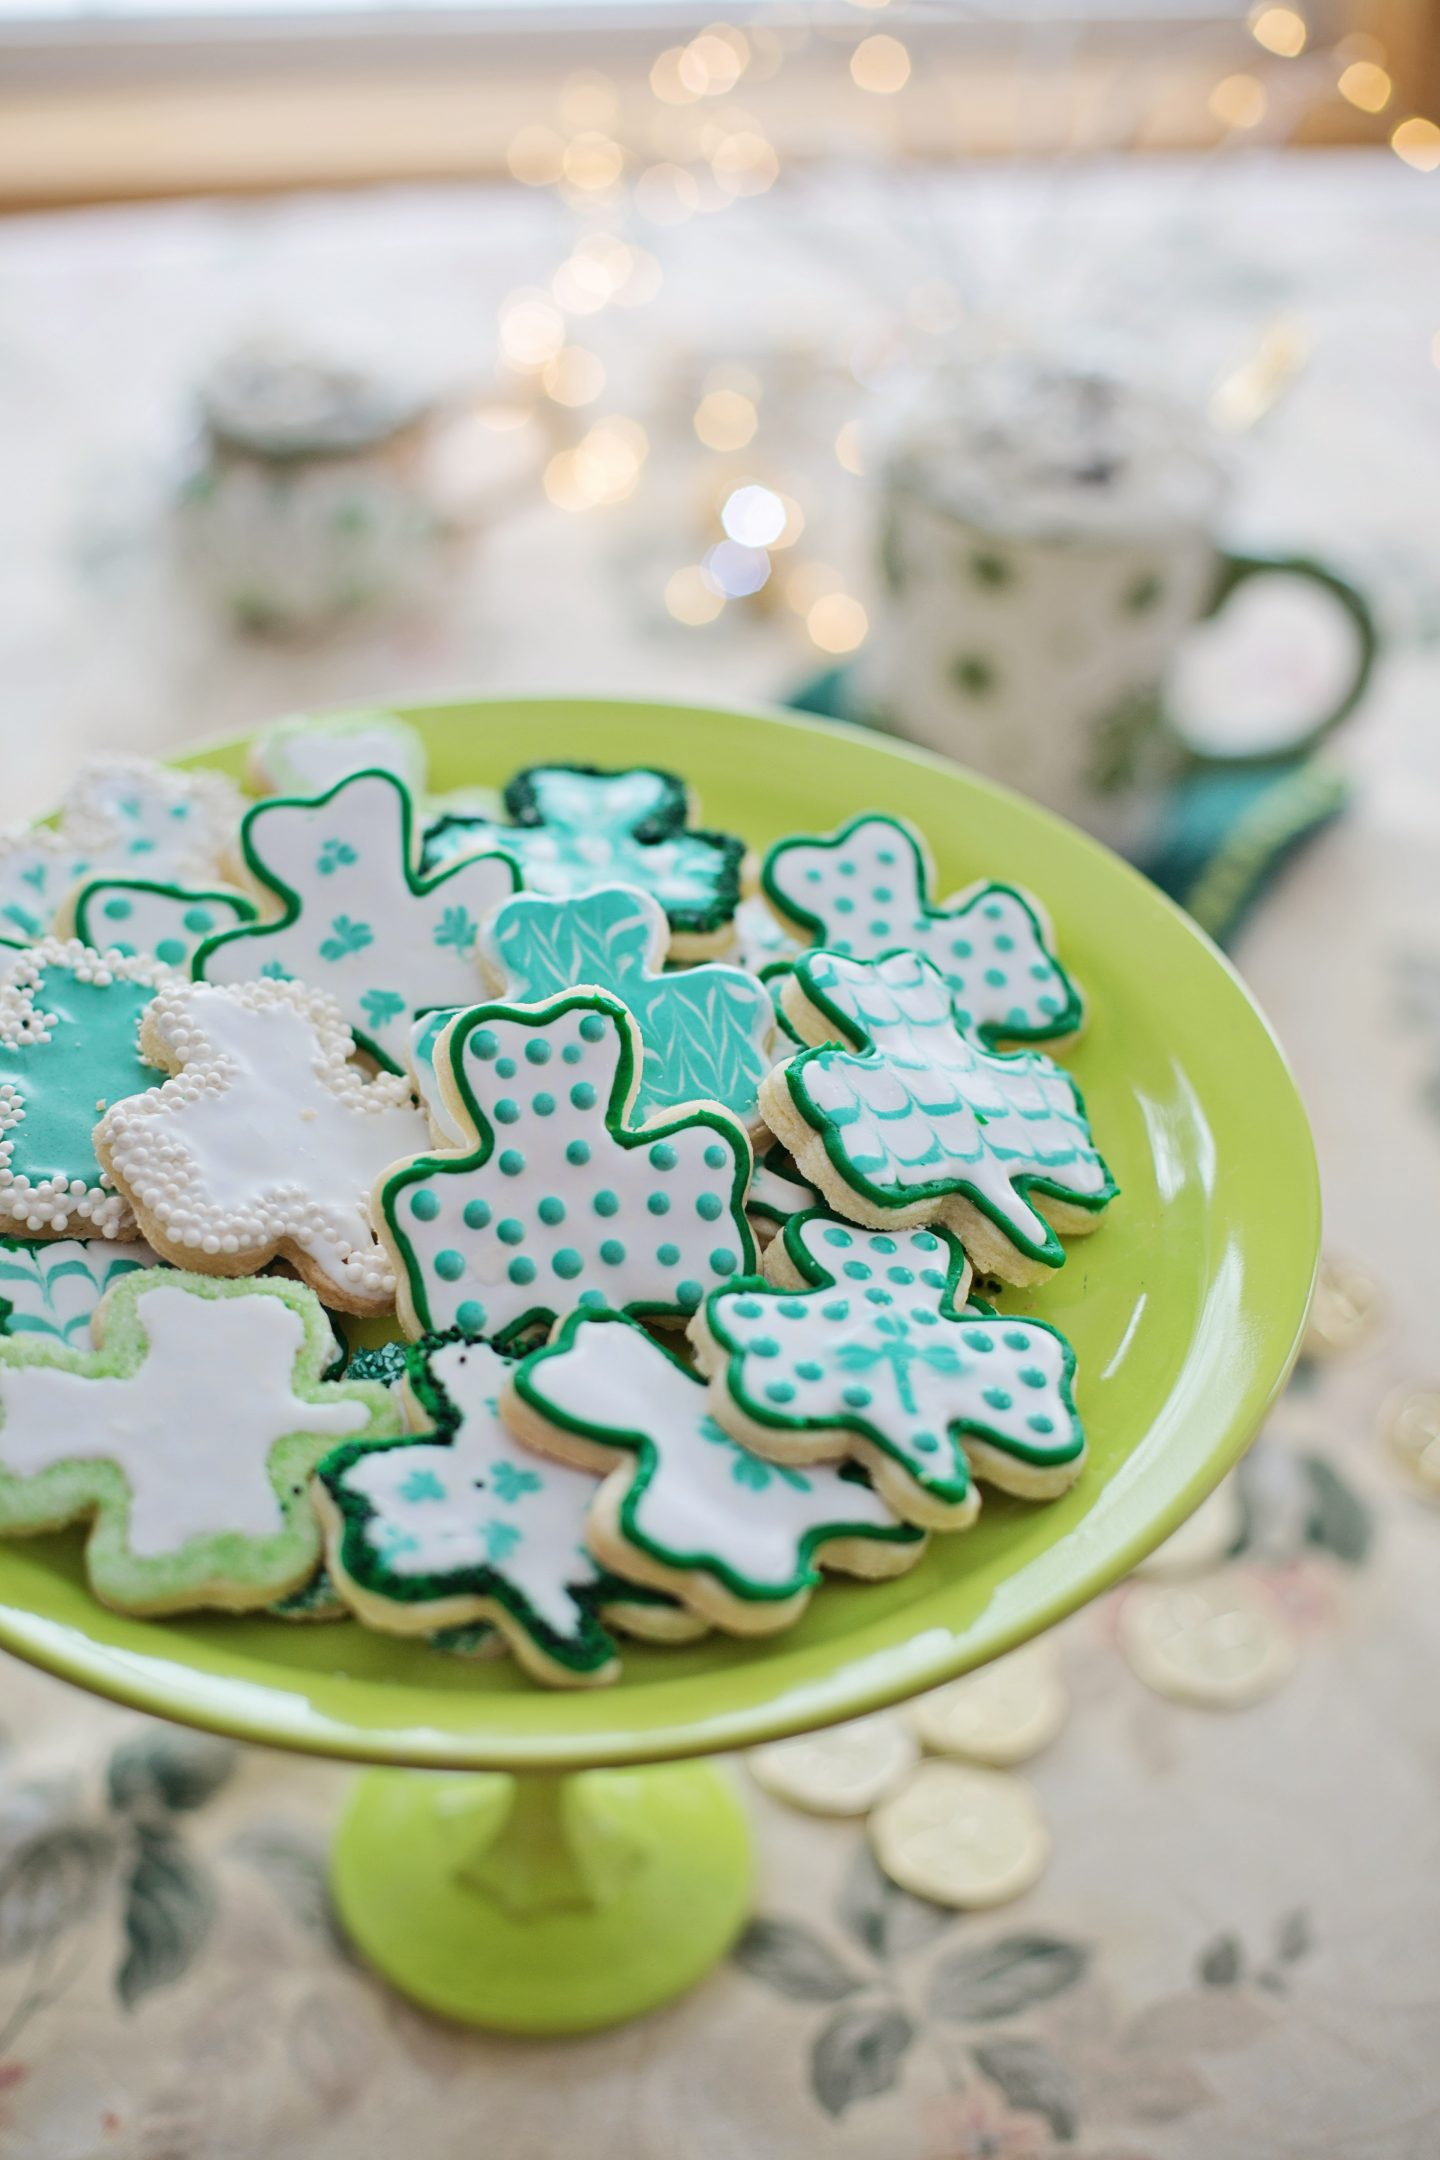 How To Host The Ultimate St Patrick's Day Dinner Party!